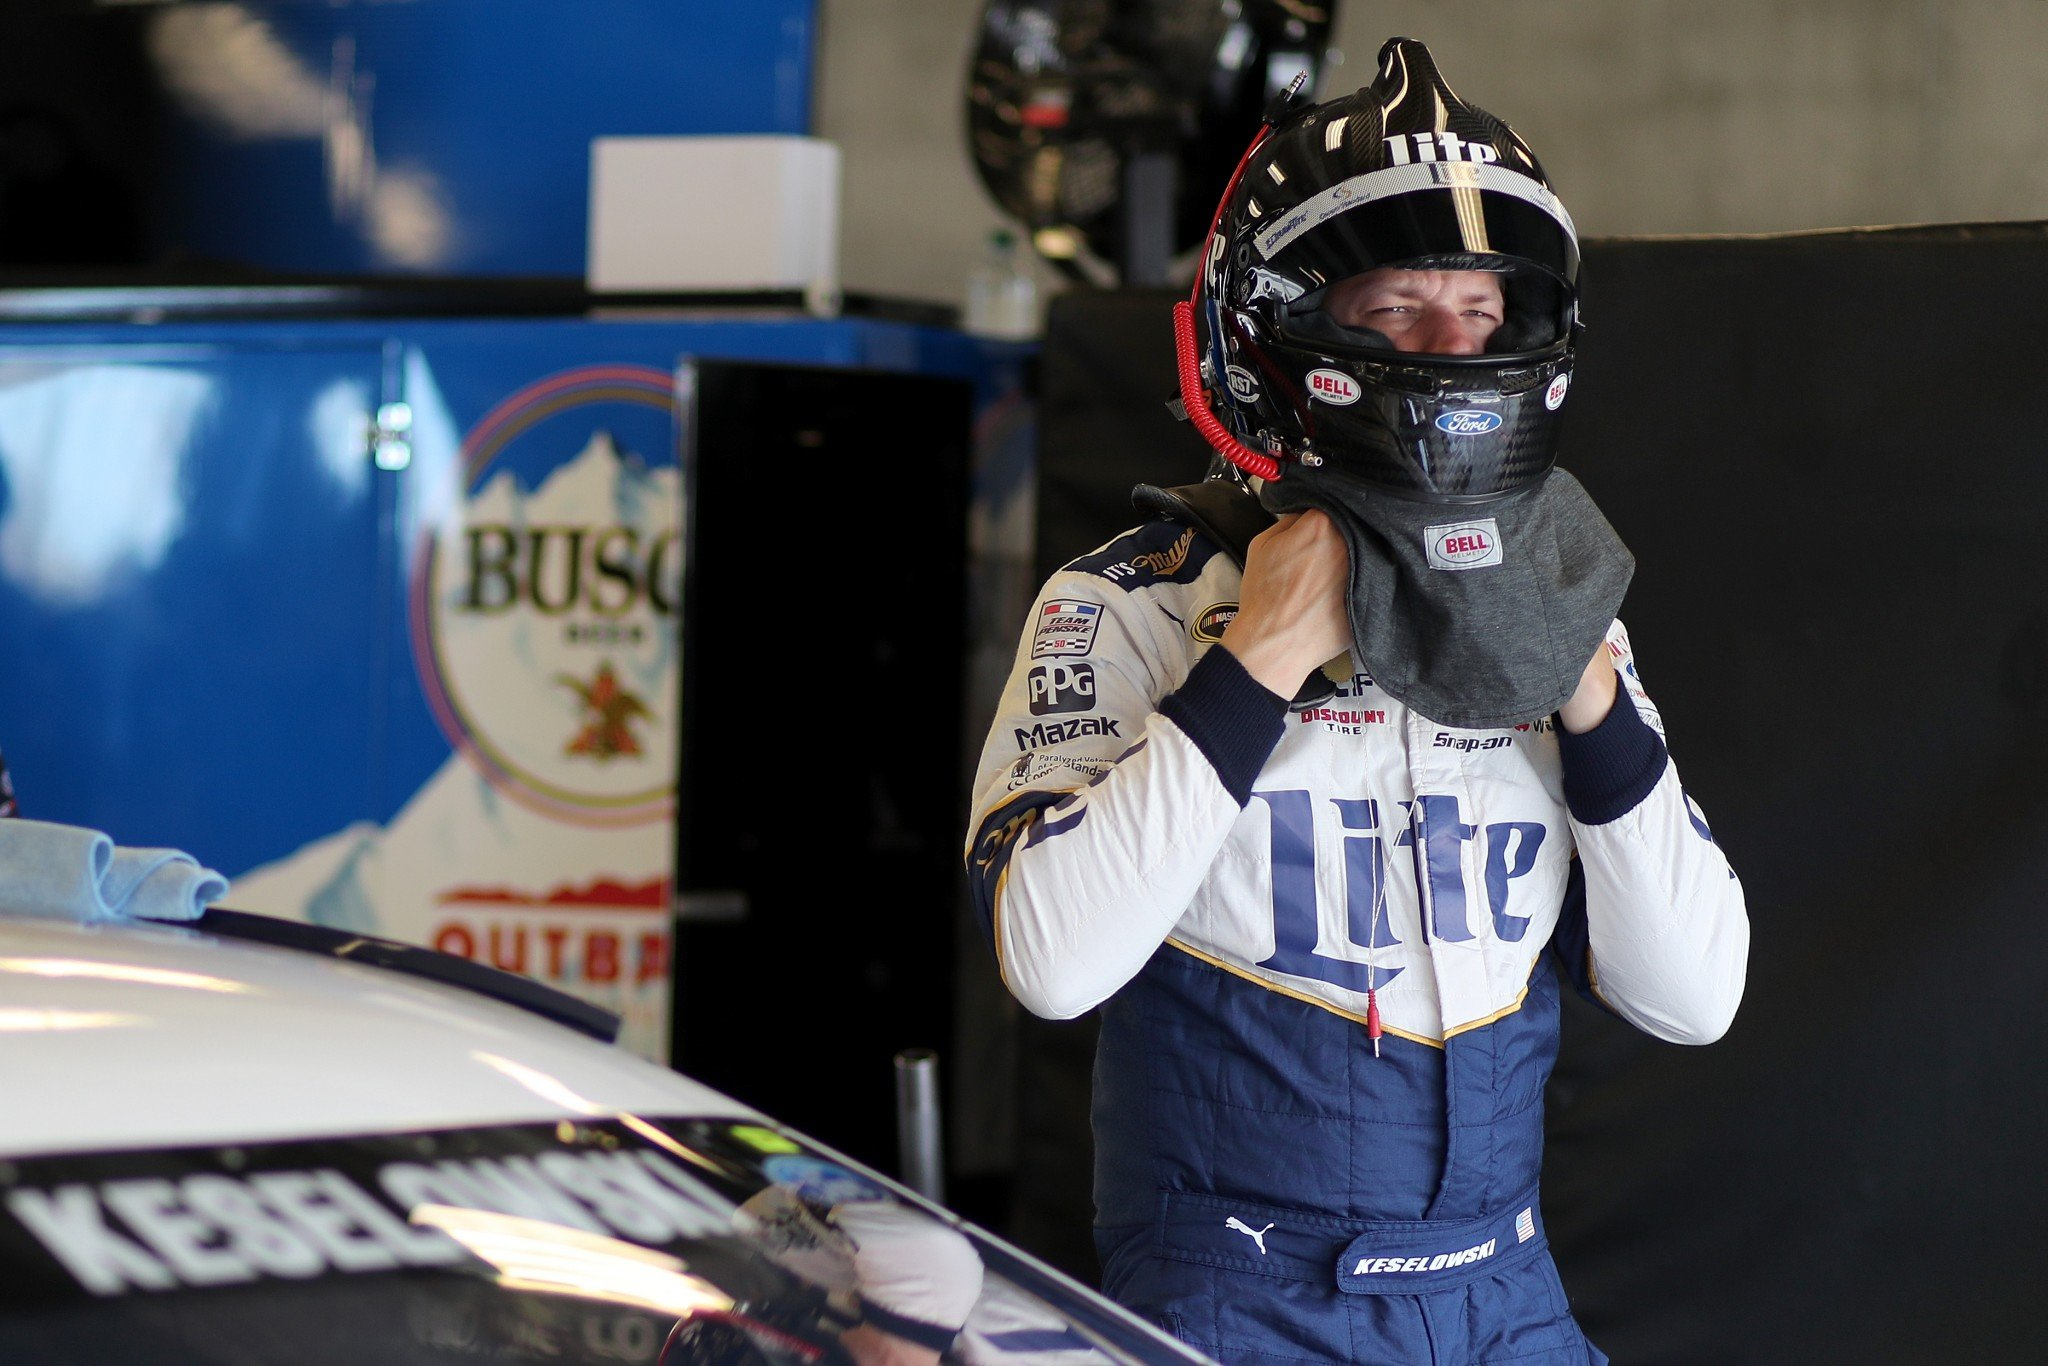 Brad Keselowski is tied for the Cup lead in wins with 4 (Getty).